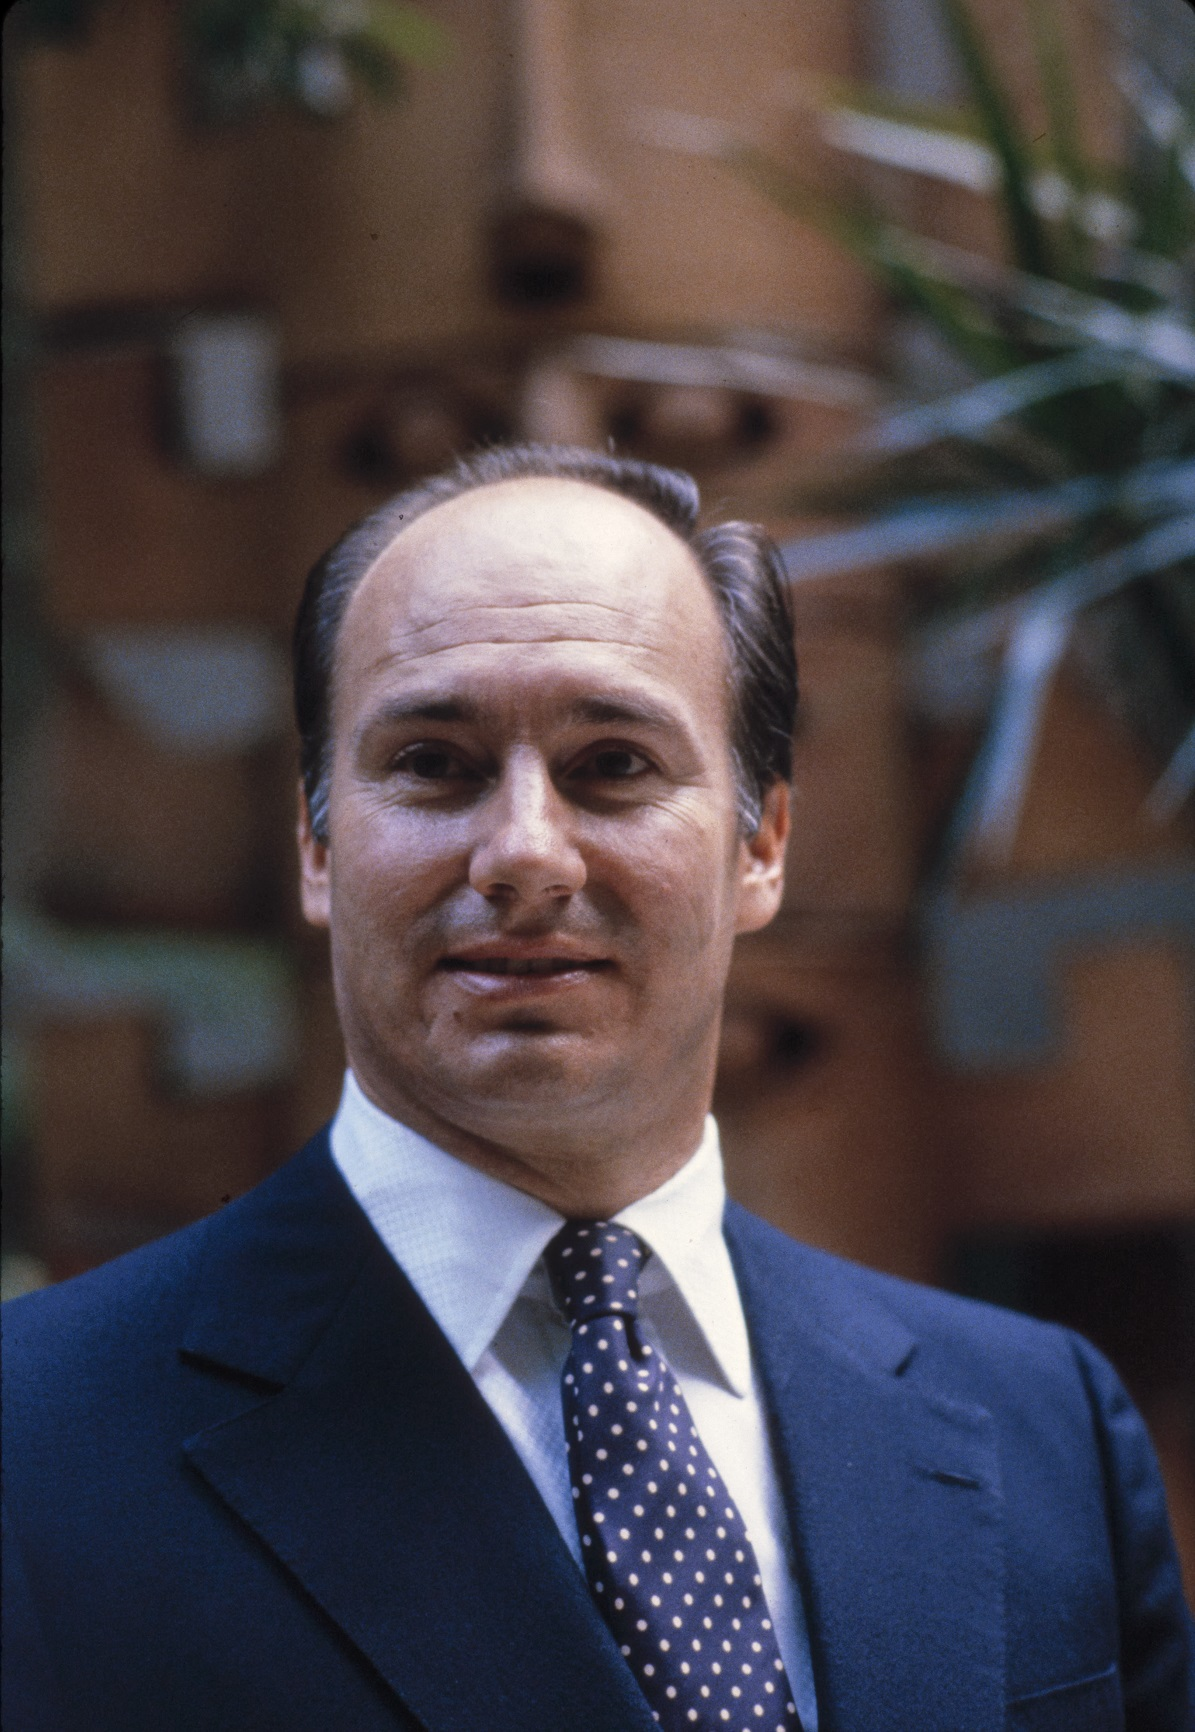 Photographs of Mawlana Hazar Imam His Highness the Aga Khan, and Members of His Family from the Bernard Gotfryd Collection at the US Library of Congress